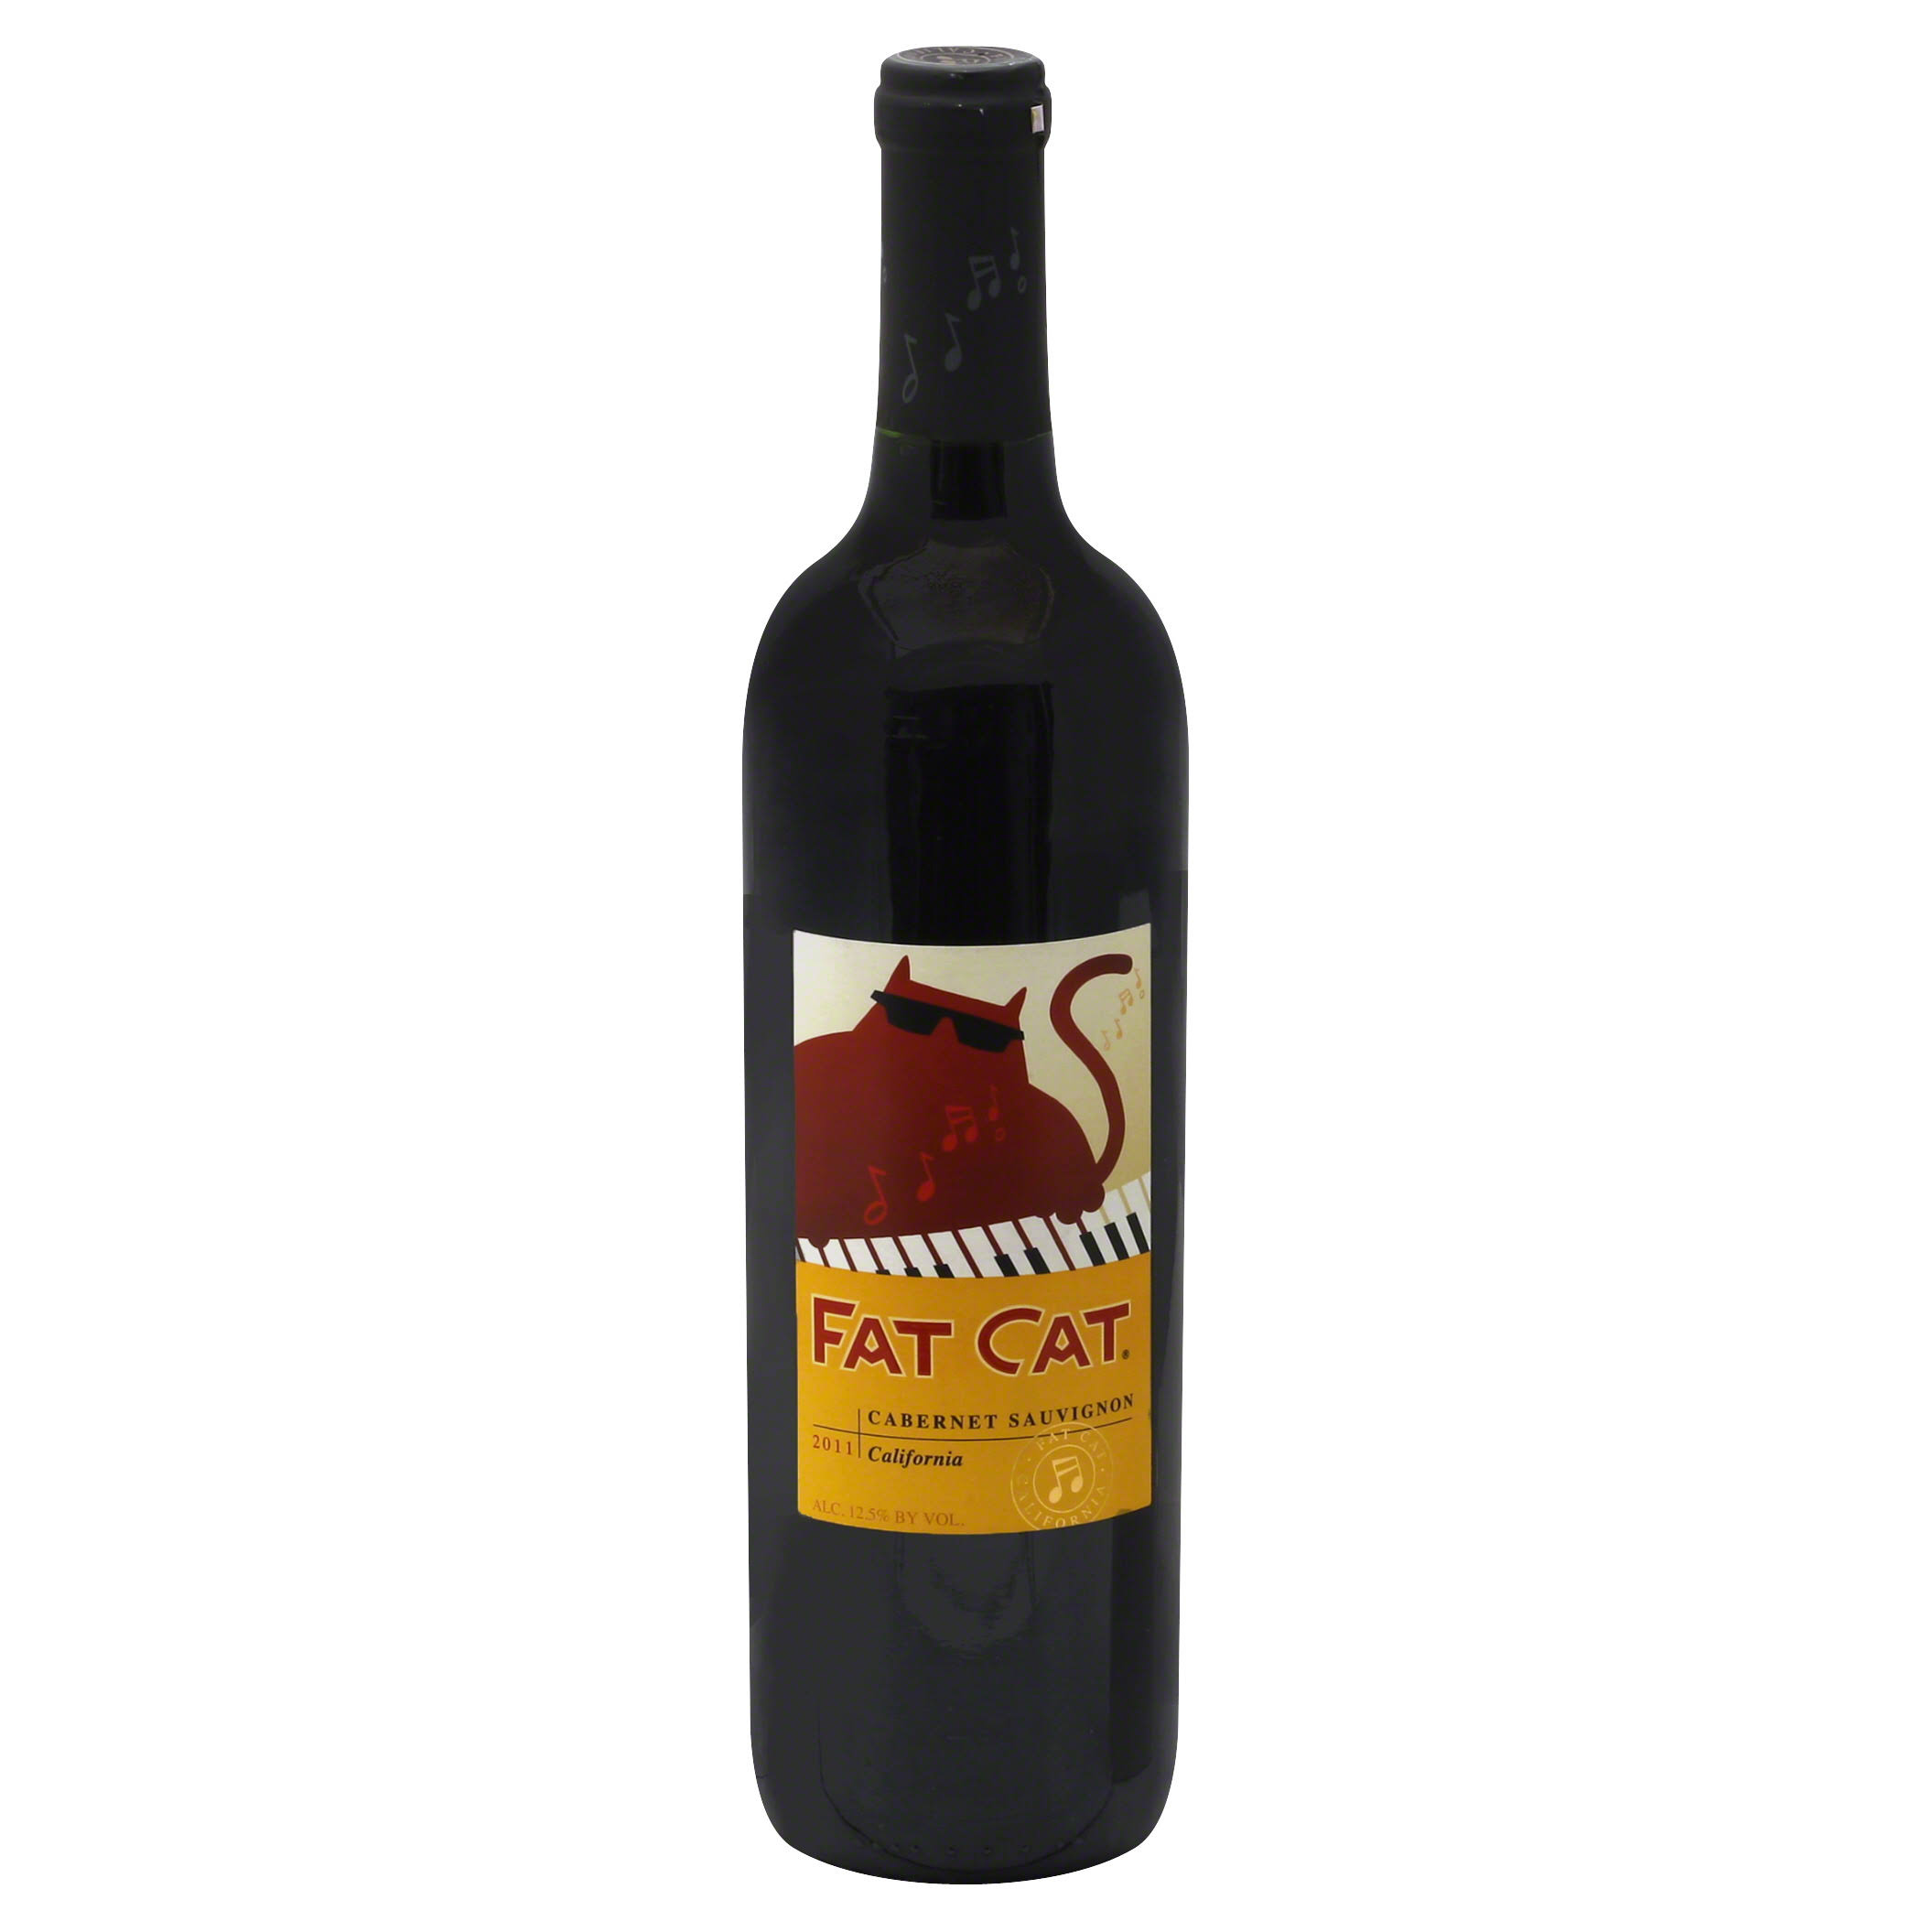 Fat Cat Cabernet Sauvignon, California, 2011 - 750 ml